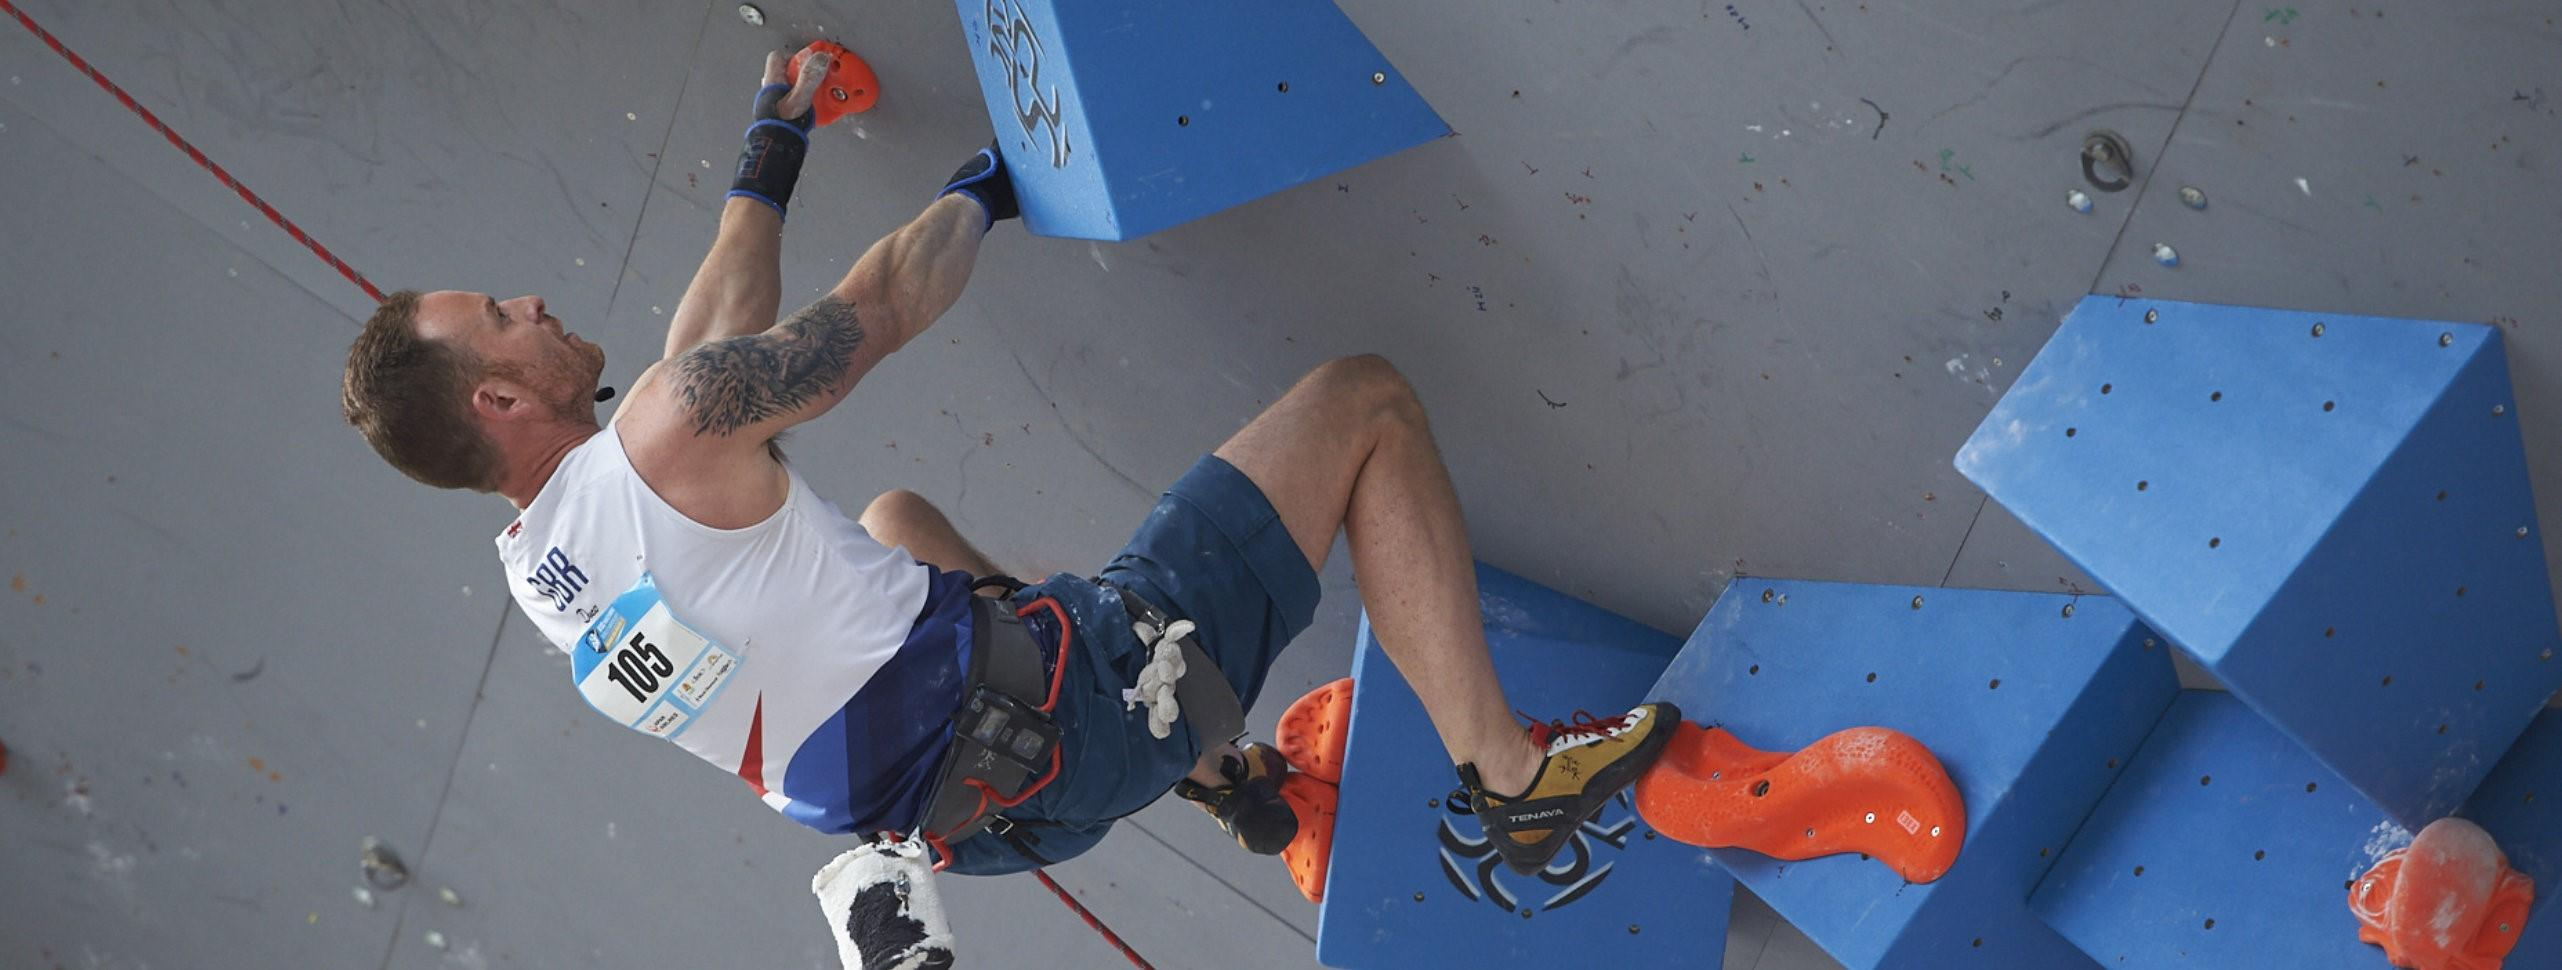 RENEWED PARACLIMBING SECTION NOW AVAILABLE ON THE IFSC WEBSITE